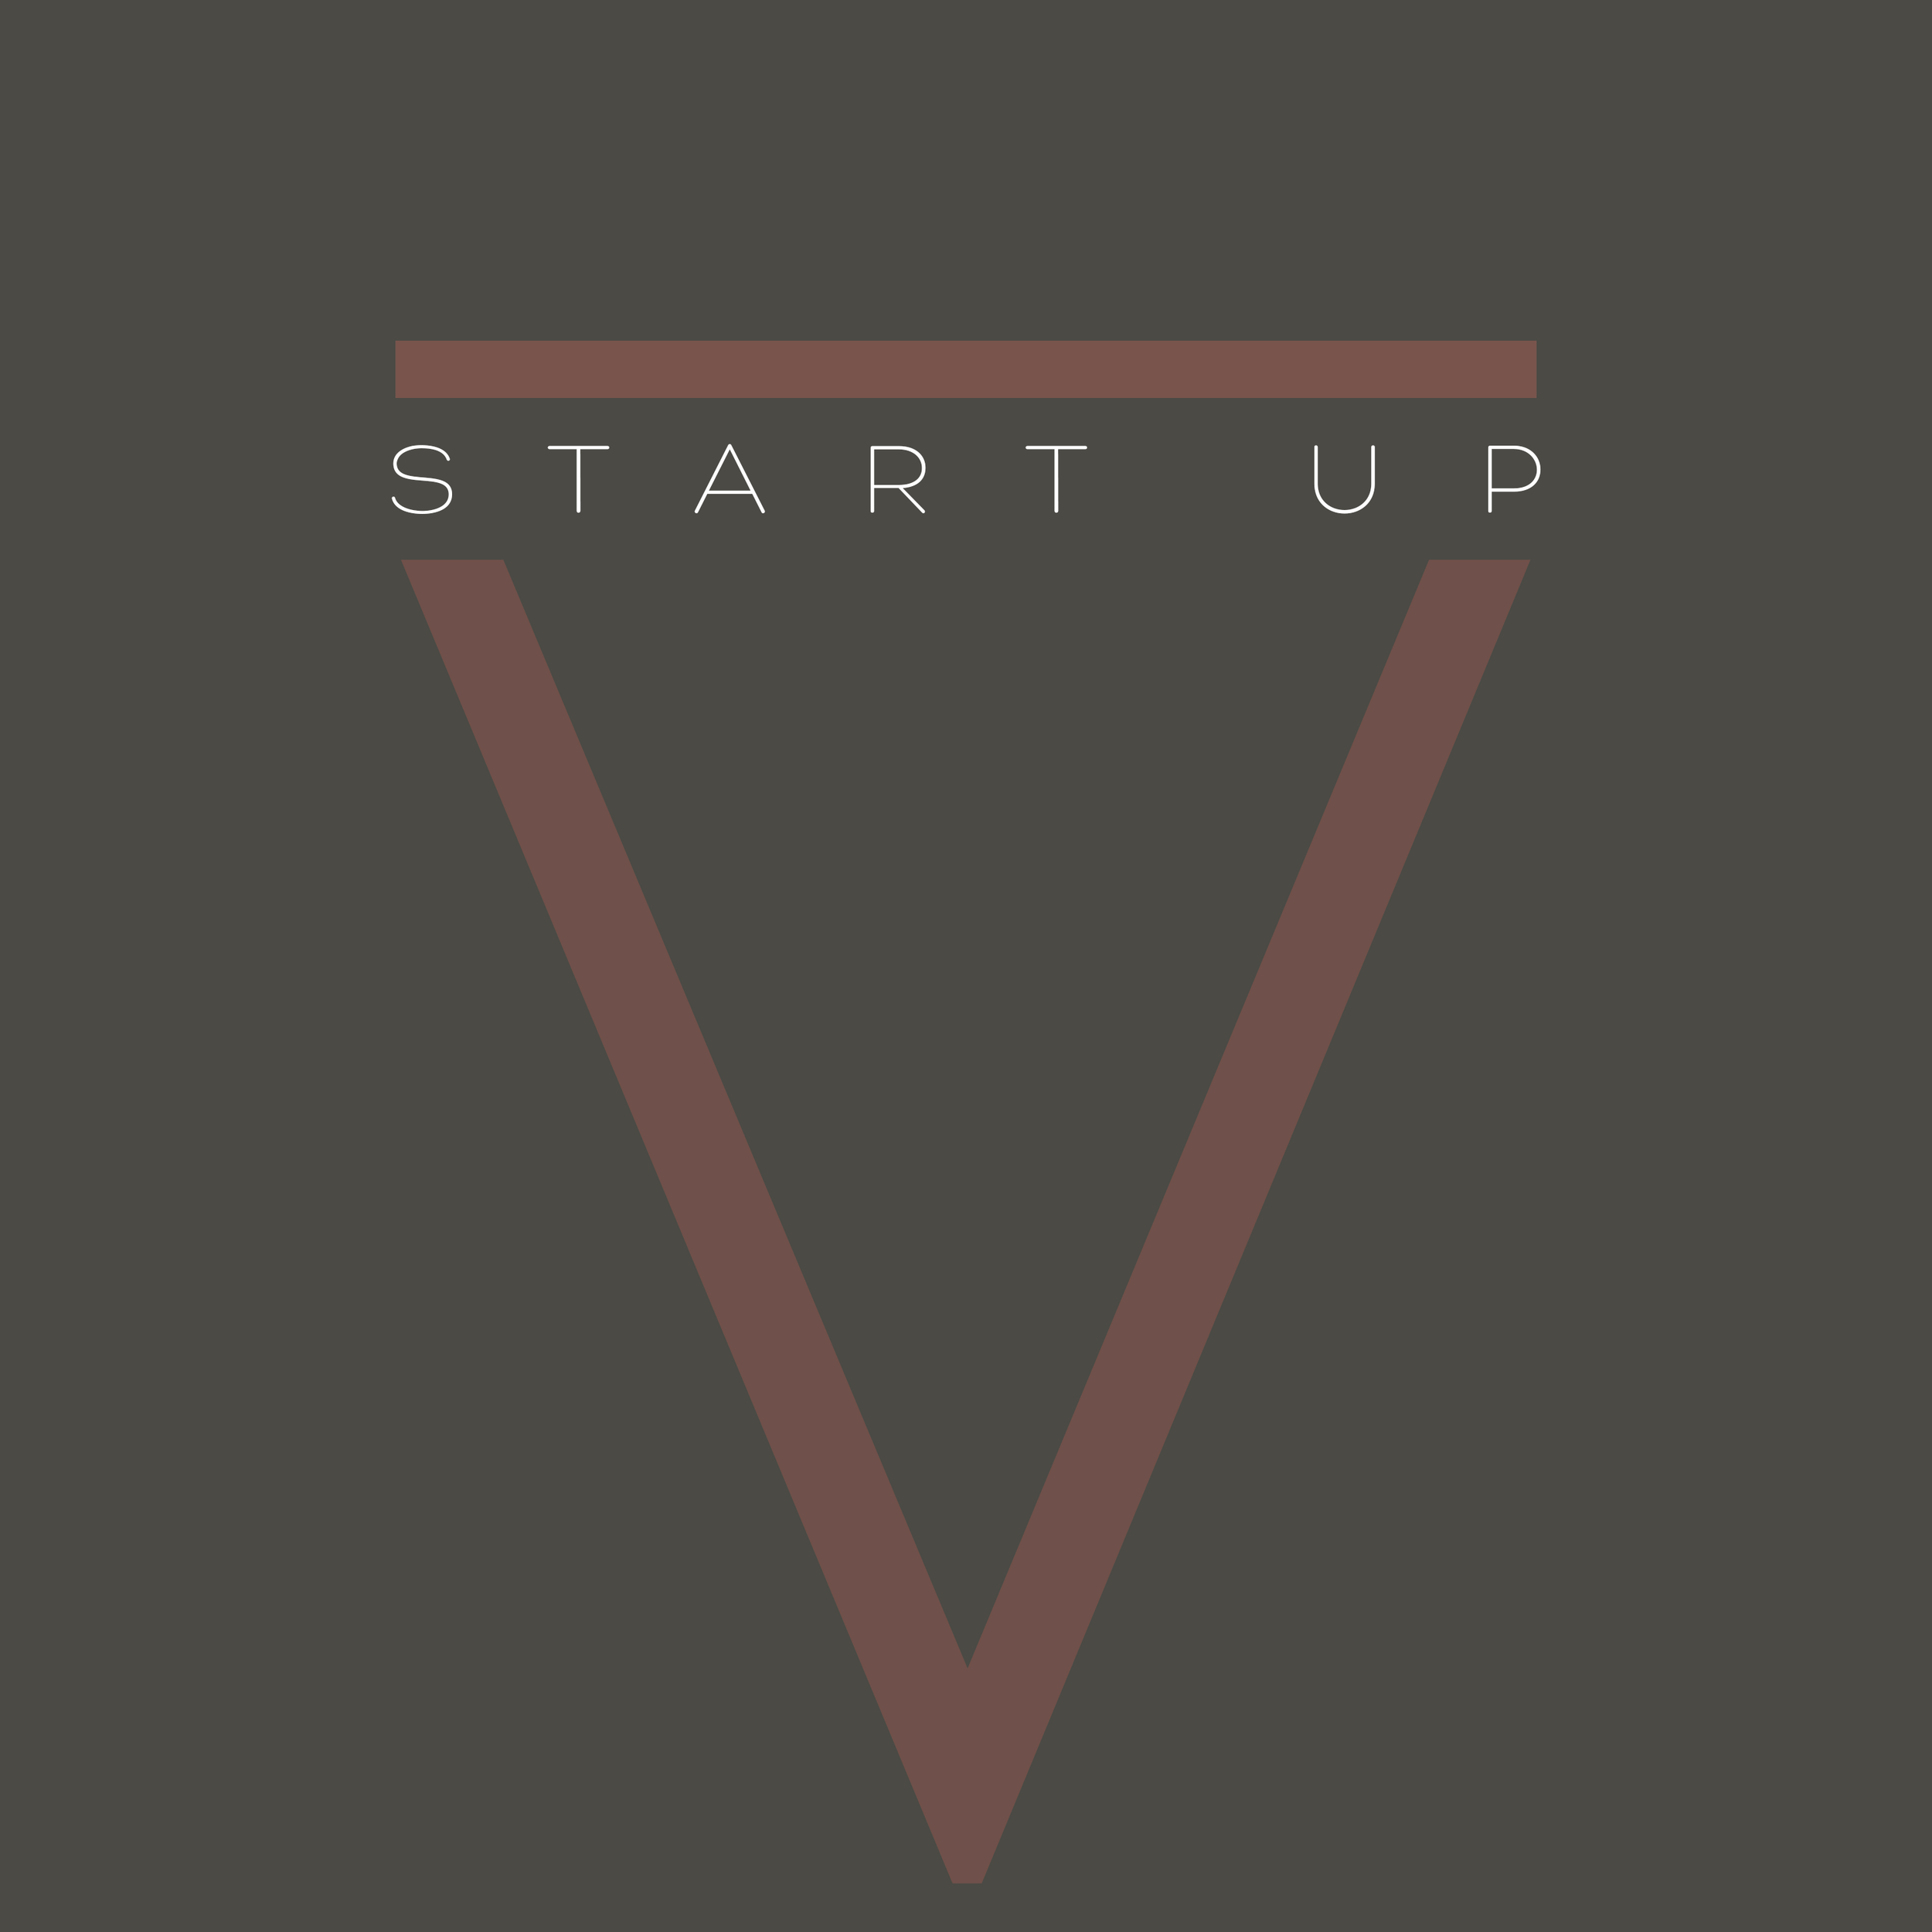 STARTUP.png